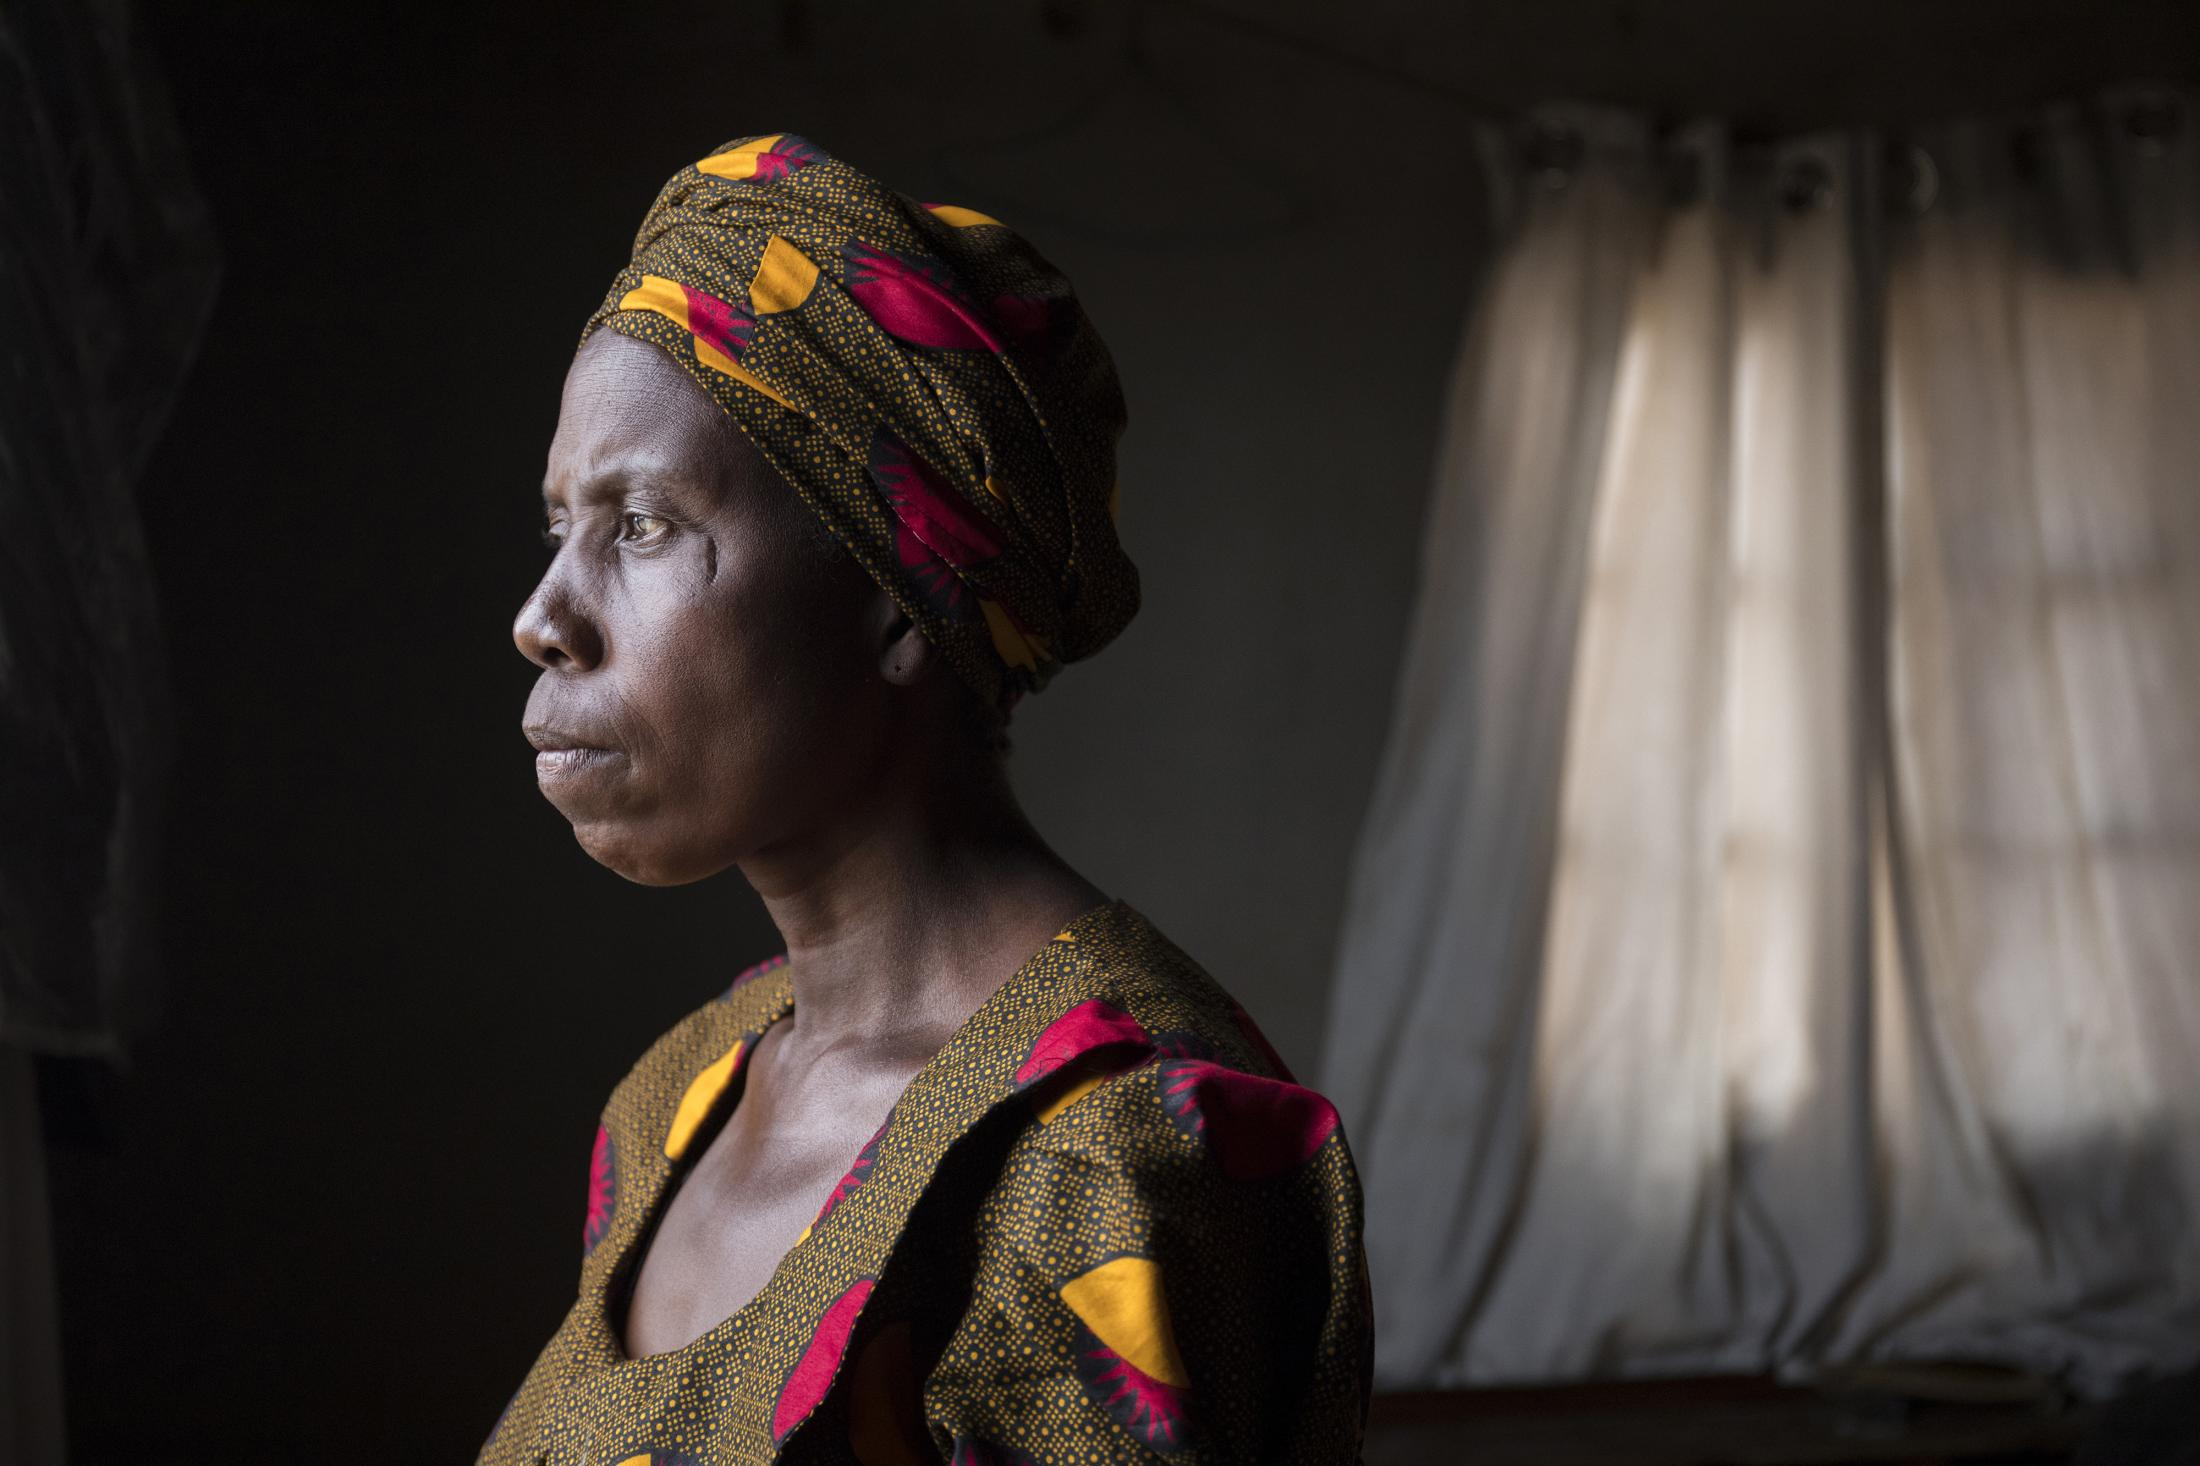 """A portrait of Sifiso at her home in Matobo, in Zimbabwe's Matabeleland South province where she lives with her husband and 6 of her 7 children. She has been farming since 1973 supporting her family. """"I am not learned and so it affects me when I fail to take my children to school because that means they won't be able to earn a living and I can't help."""" Cynthia Matonhodze for Oxfam."""